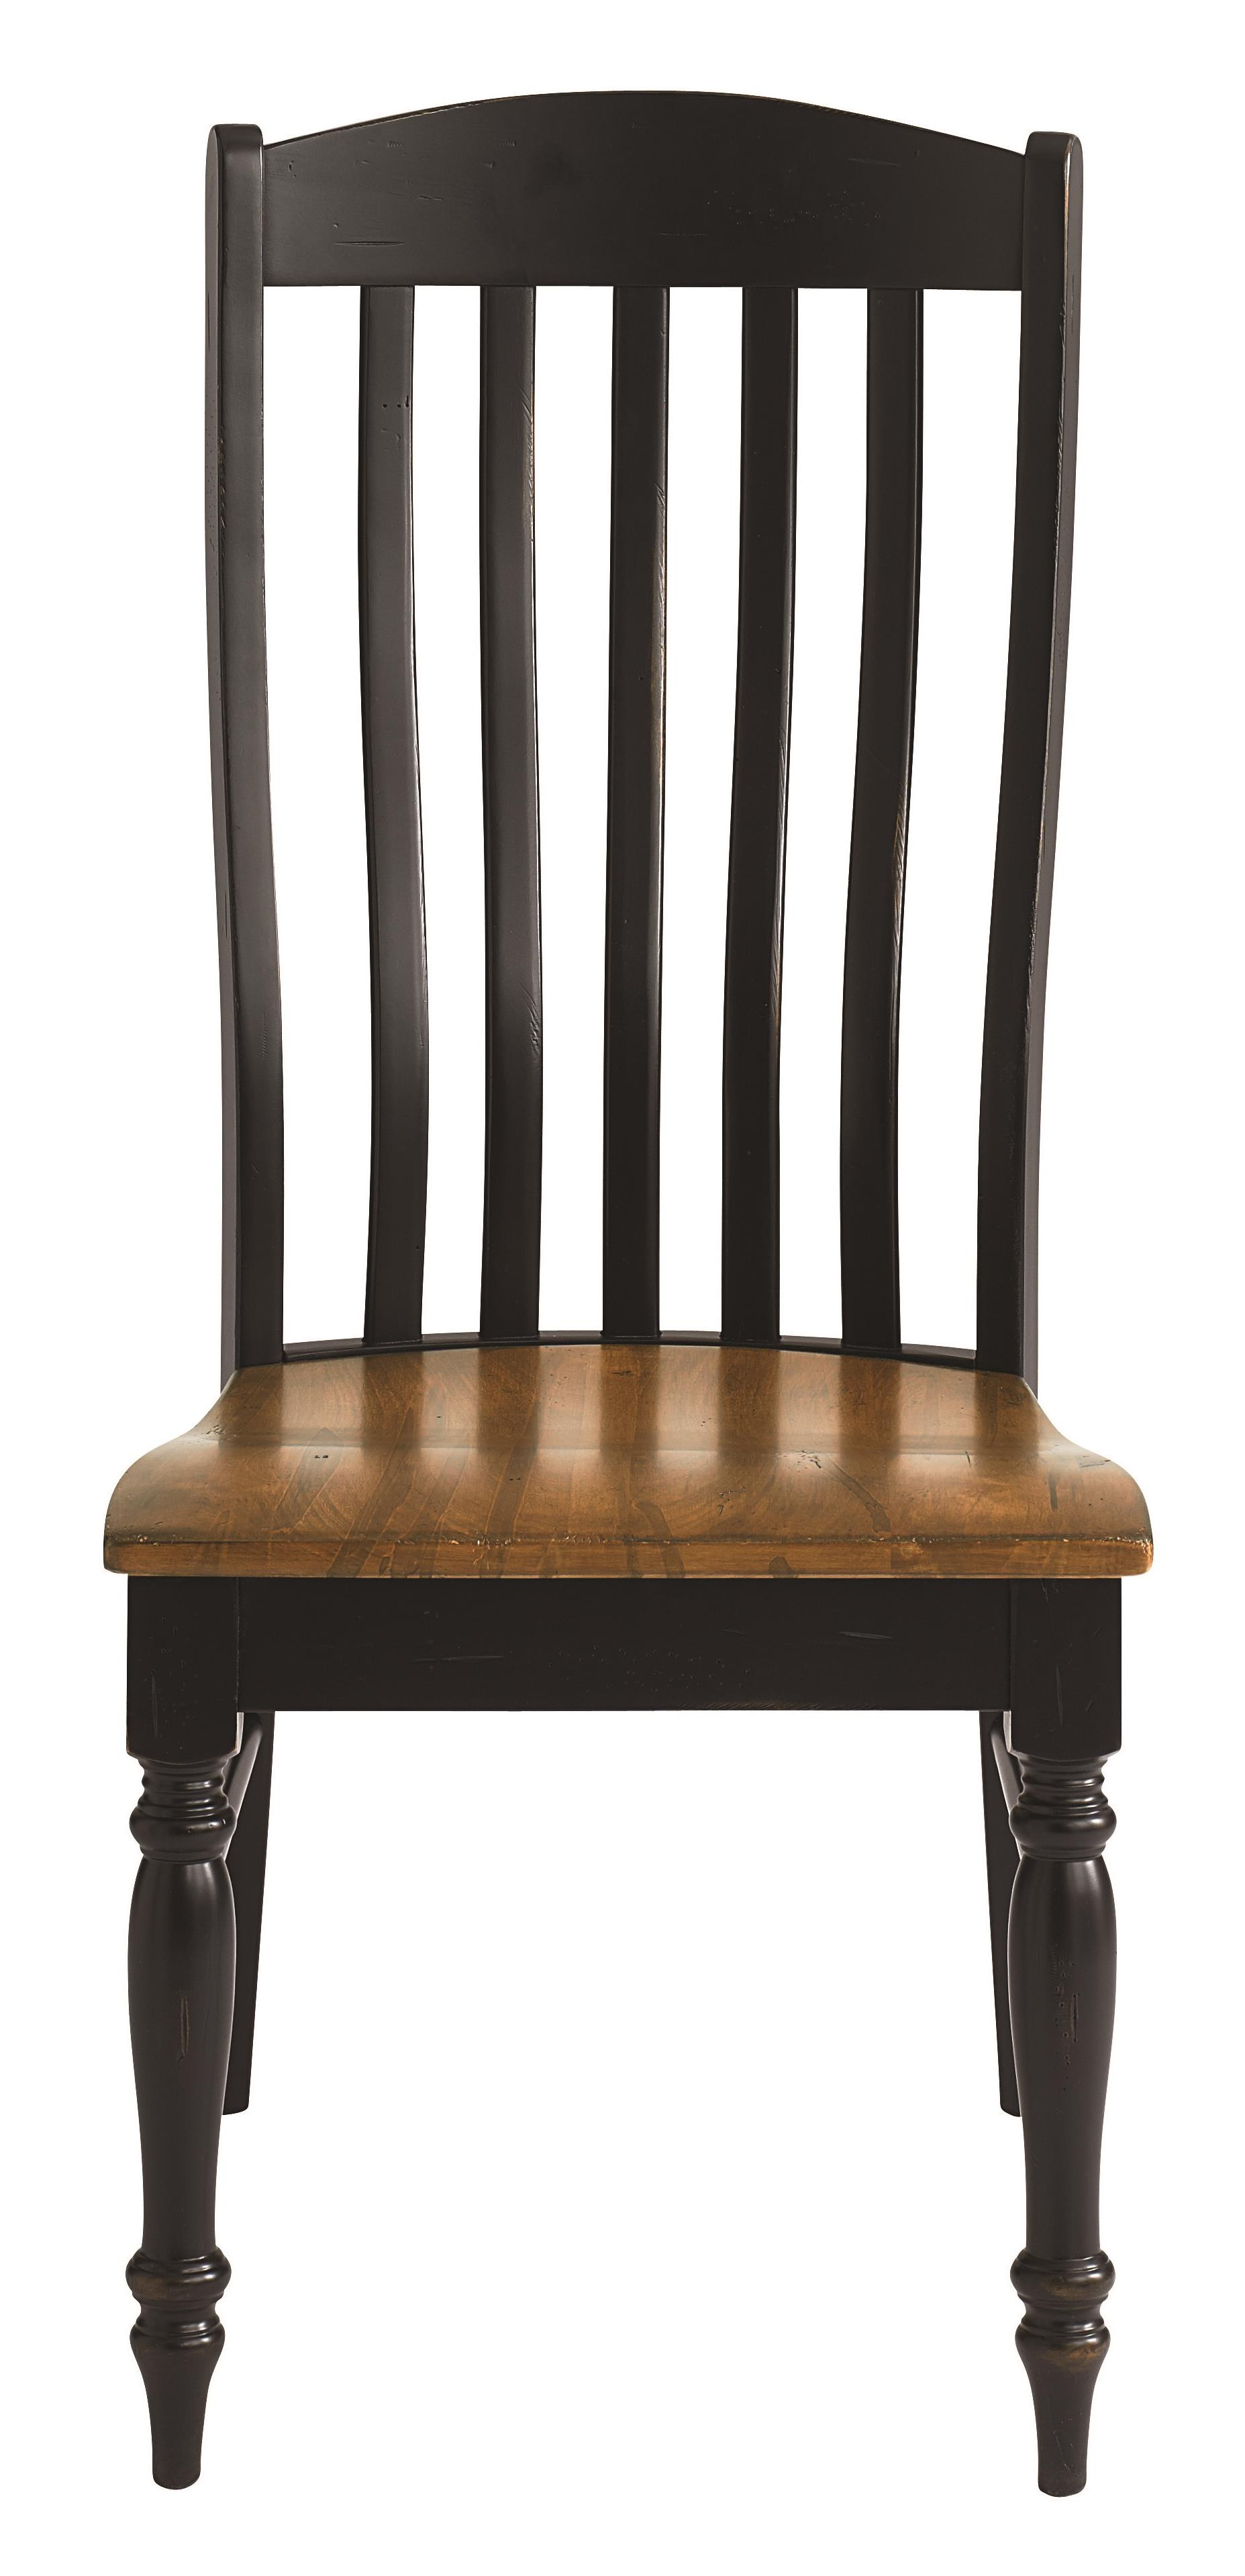 Bassett bench made 4015 2000 henry side chair with classic for Made dining chairs